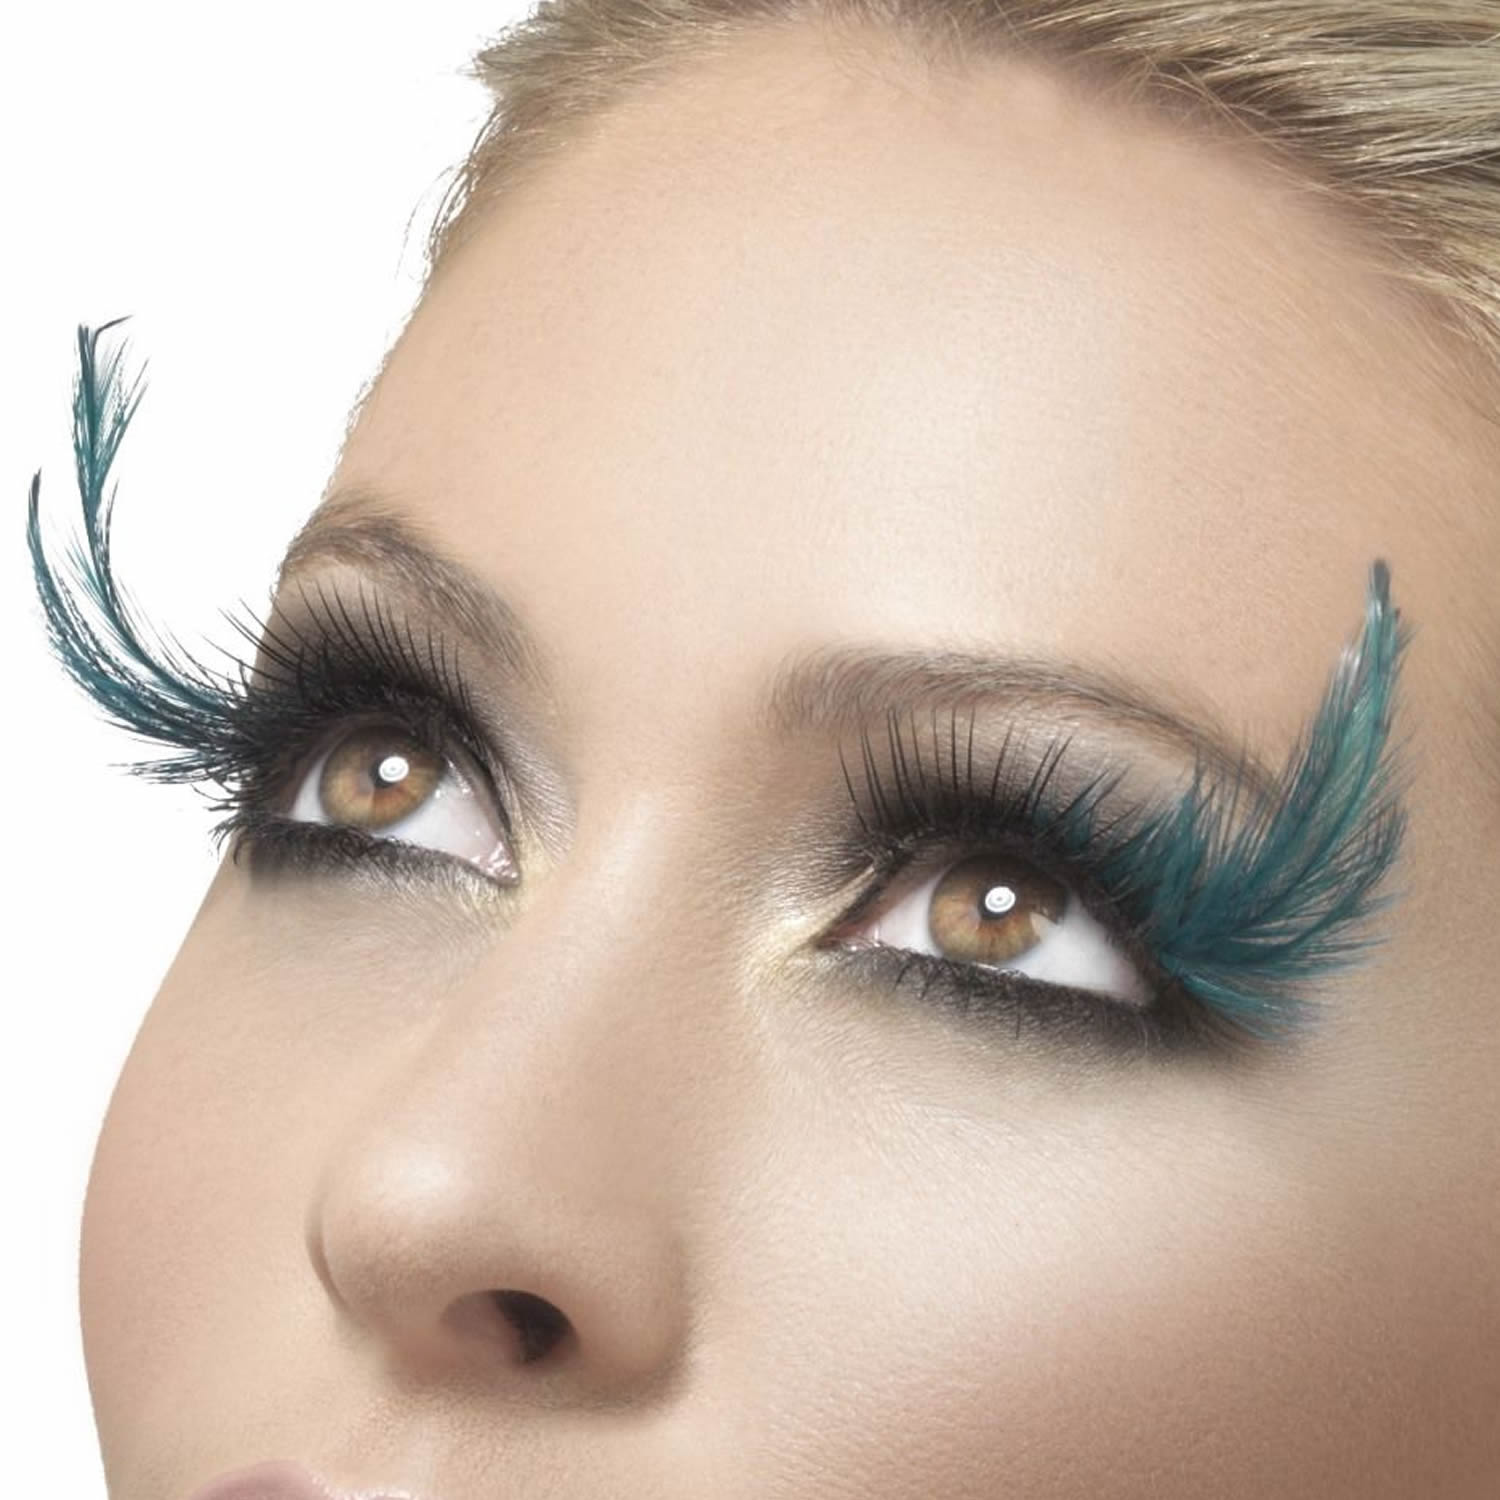 Fever False Eyelashes - Black with Teal Feather Plumes